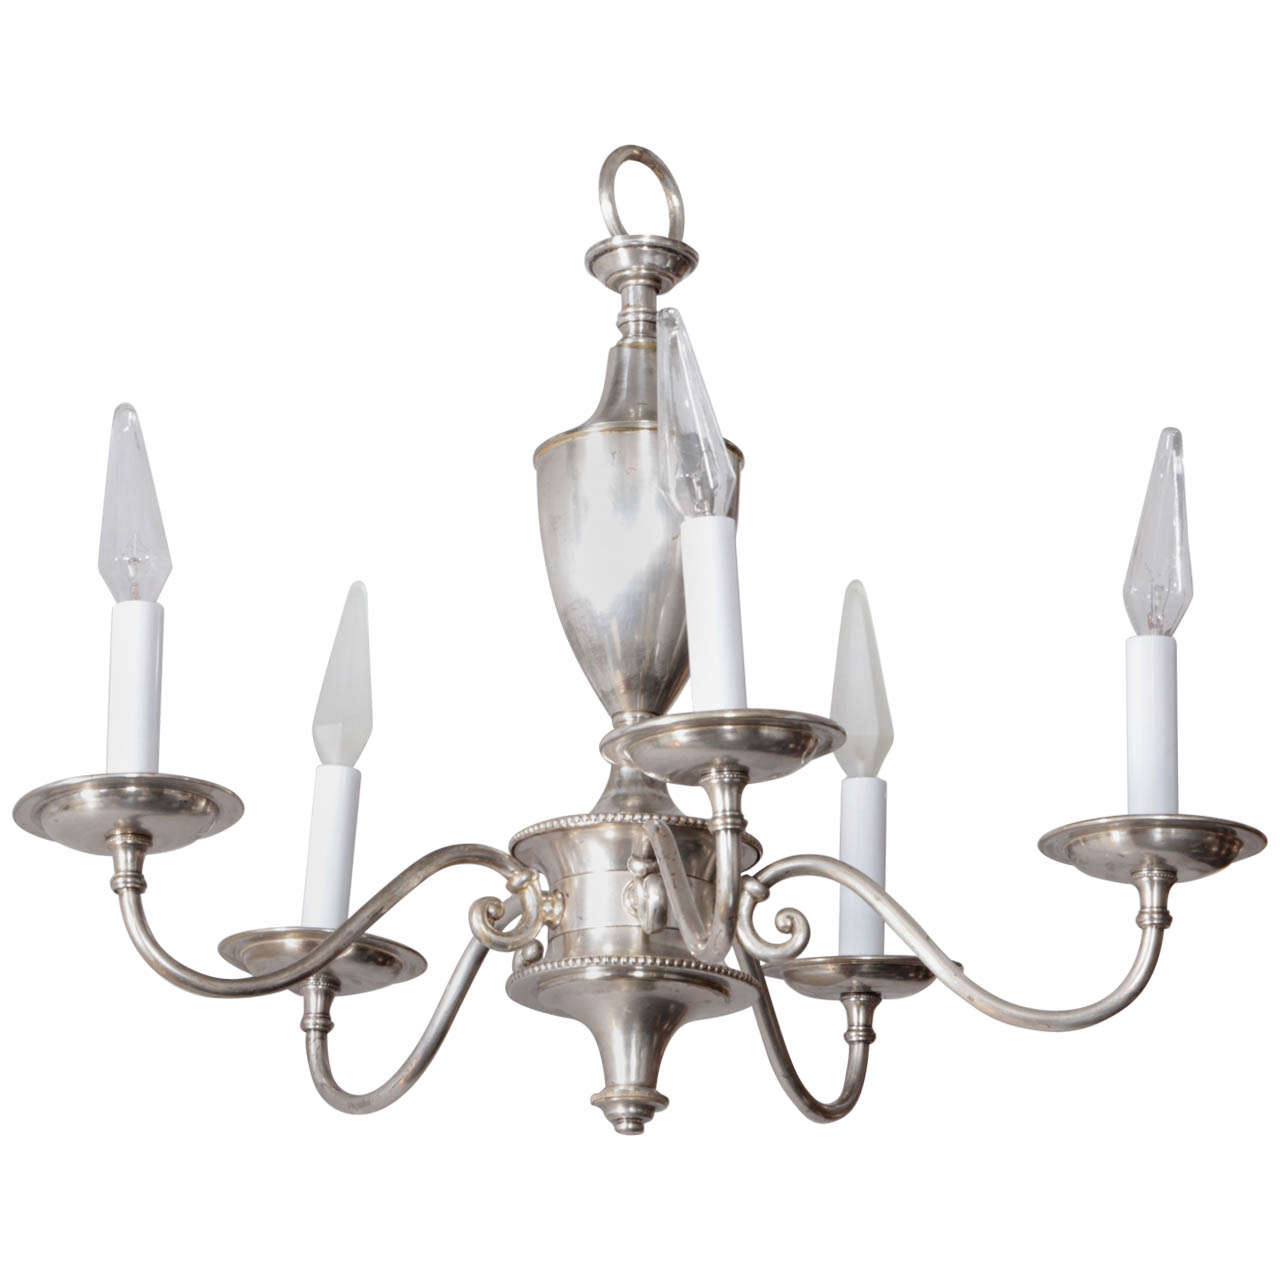 English Silver Plate Chandelier with Five Arms For Sale